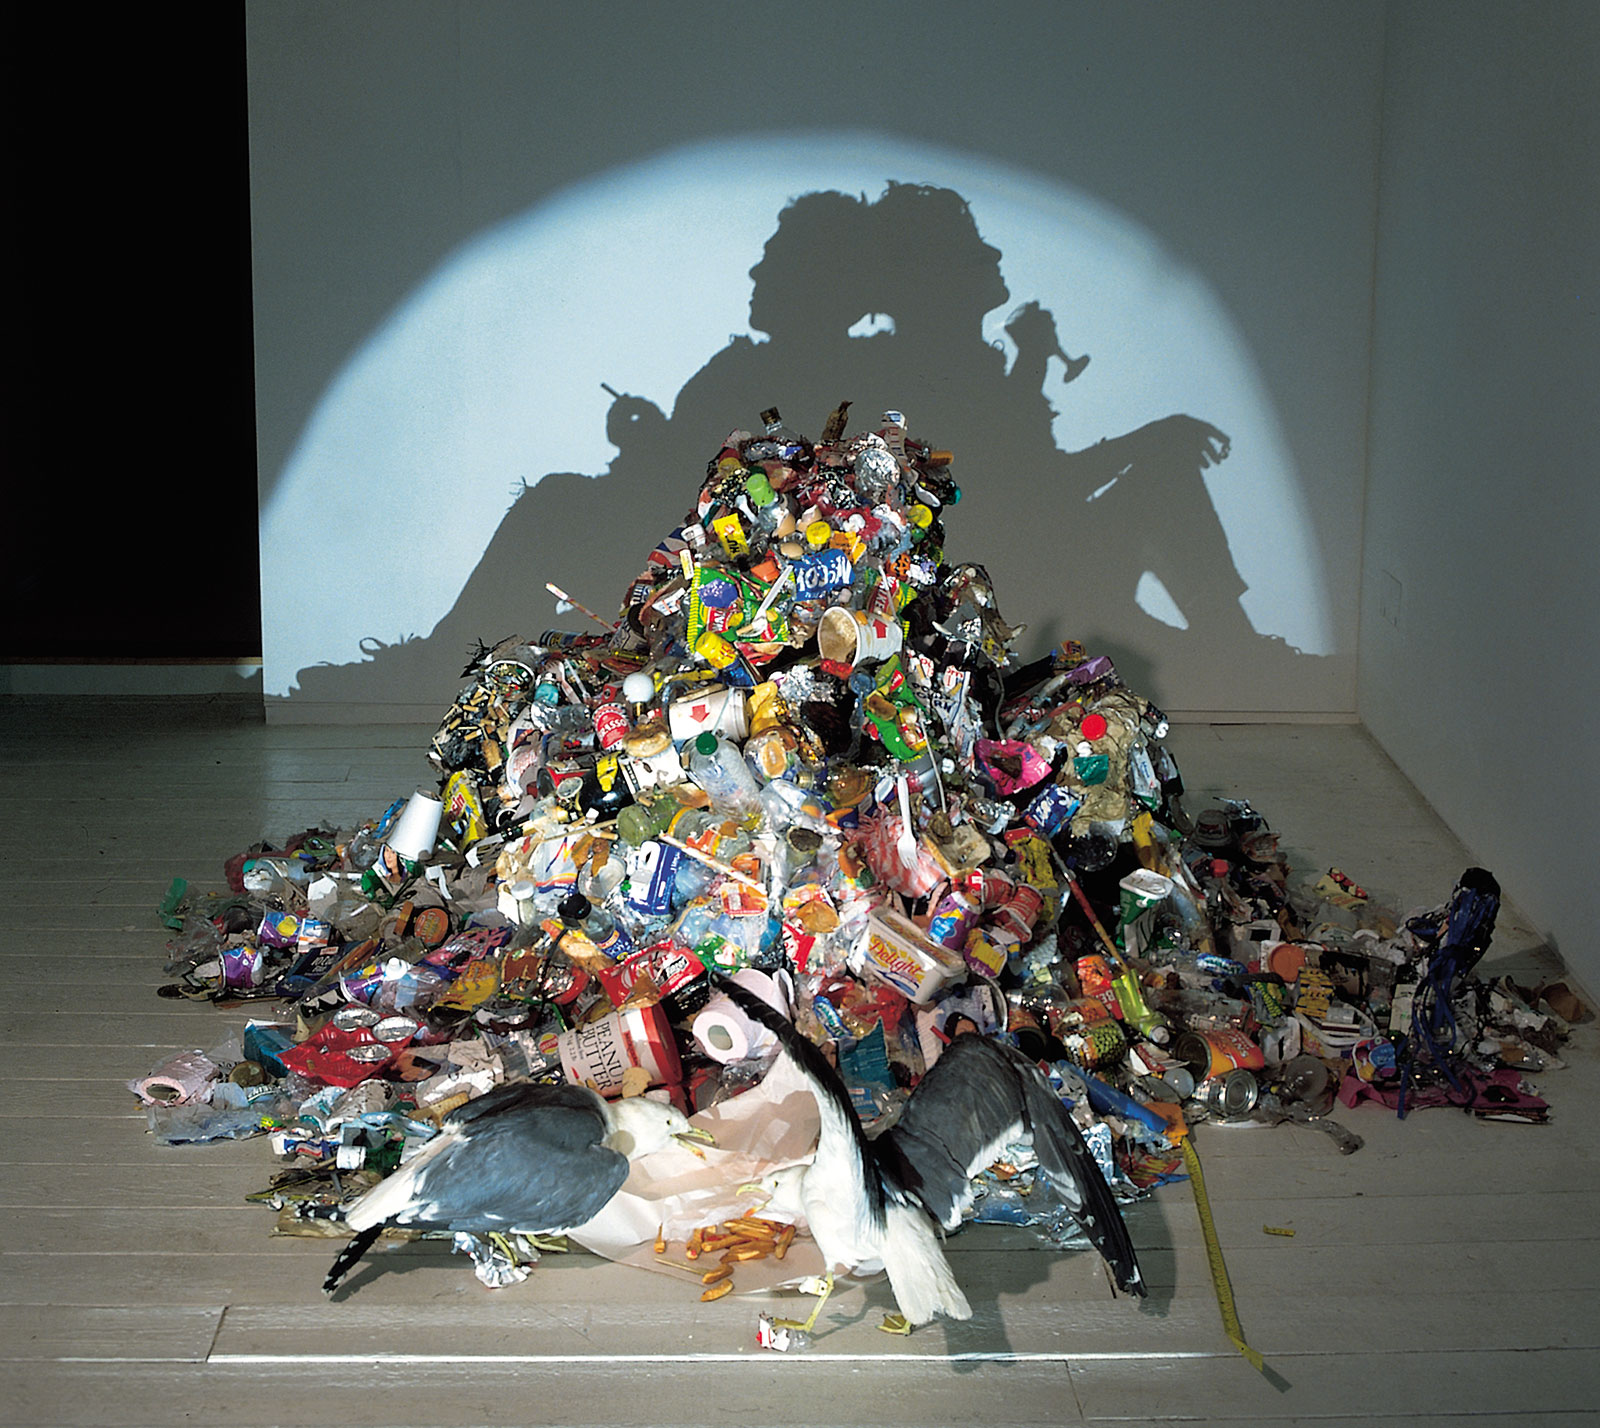 figurative shadow art from trash